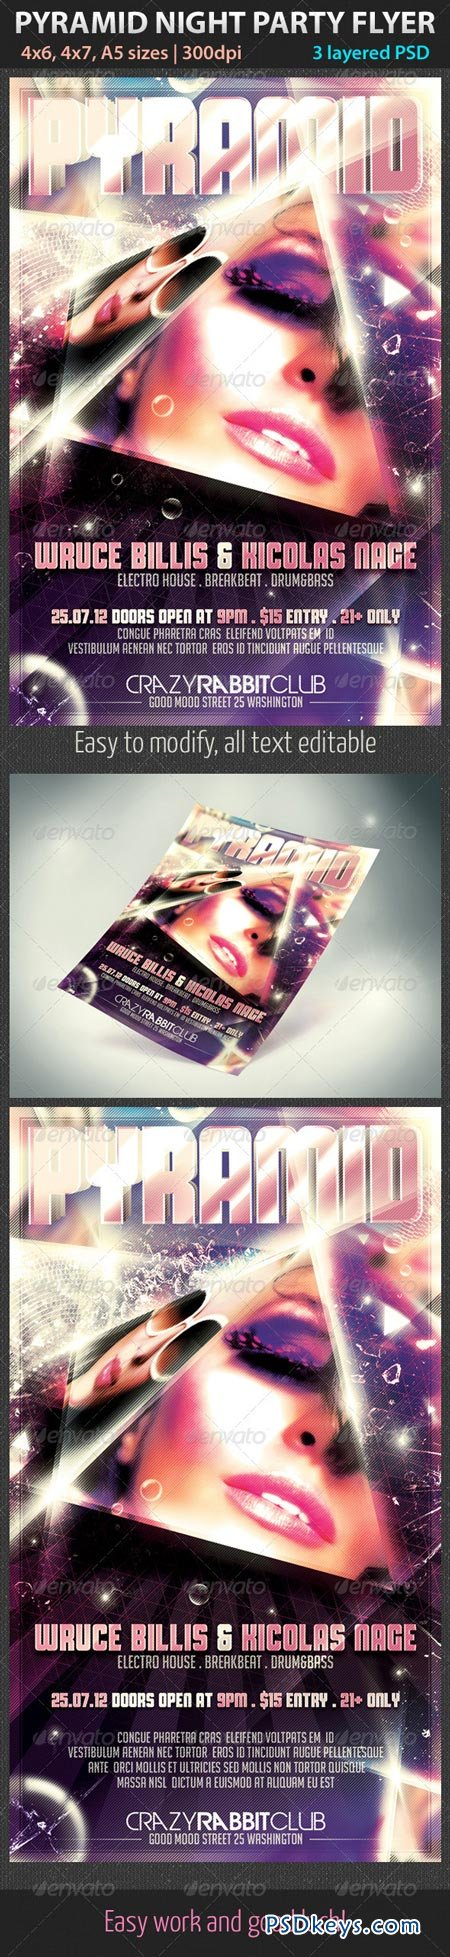 Pyramid Night Party Flyer 2755950